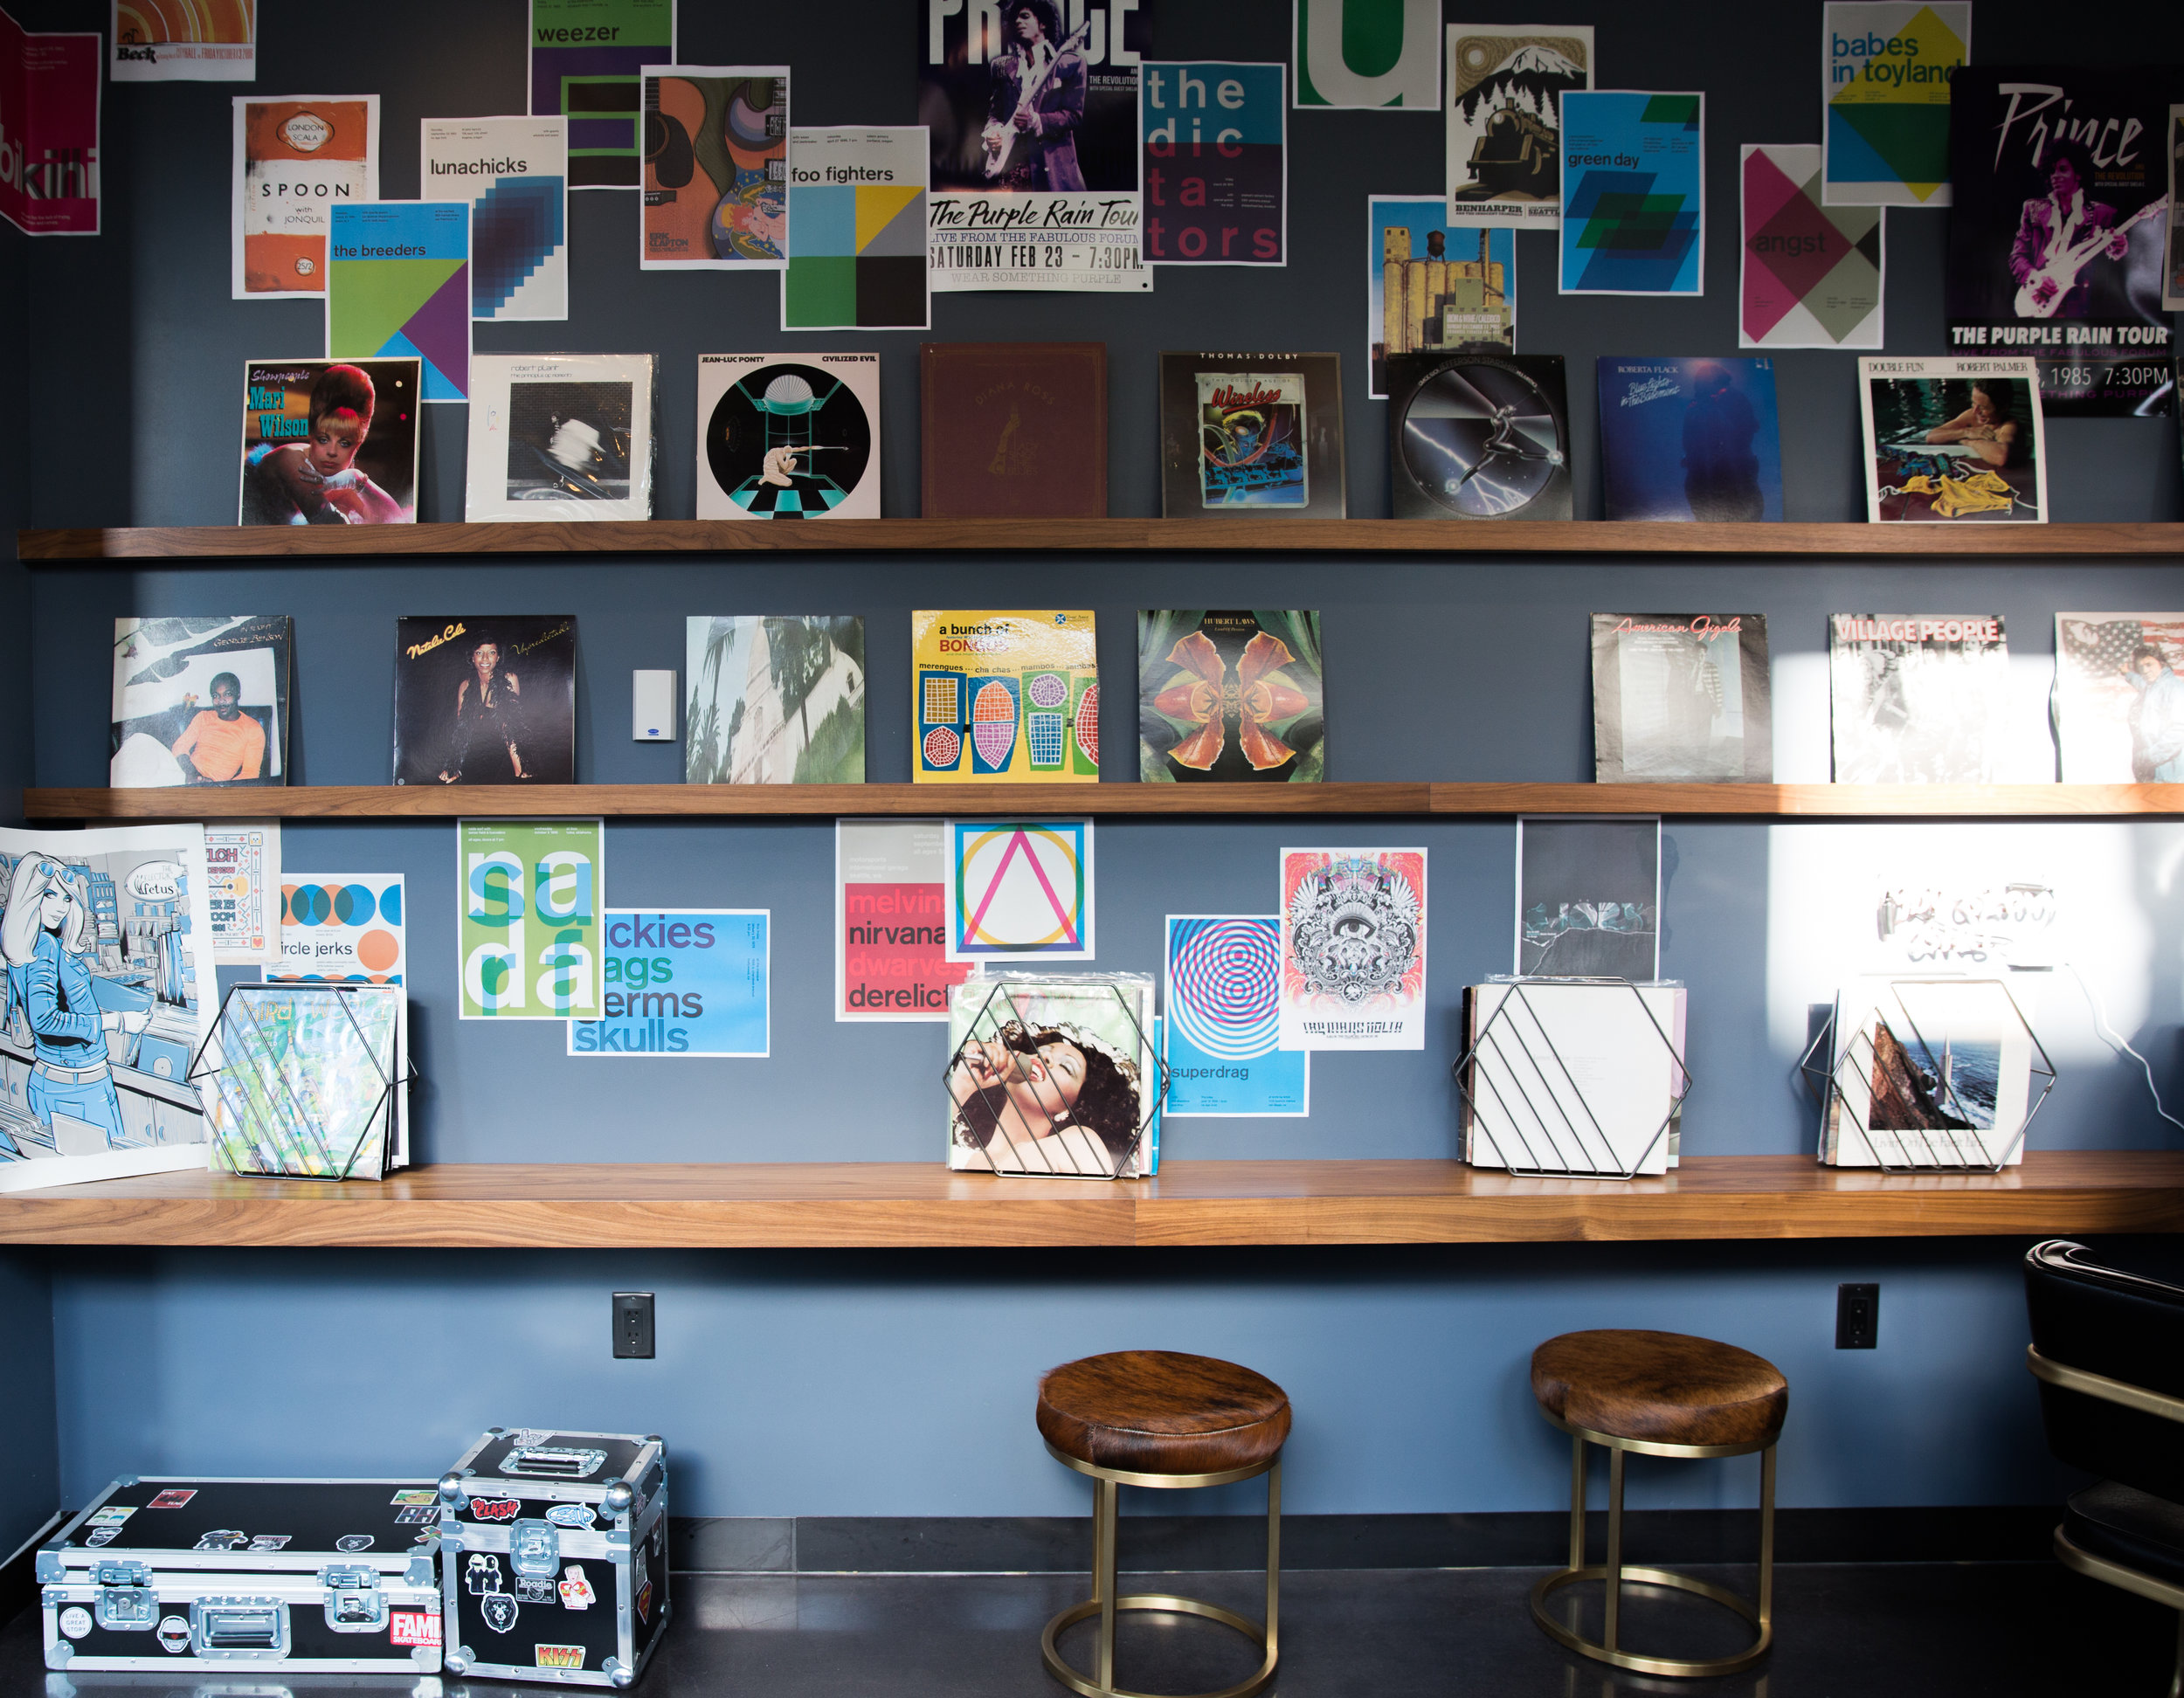 vinyl-lounge-moxy-eat-drink-dish-minneapolis.jpg